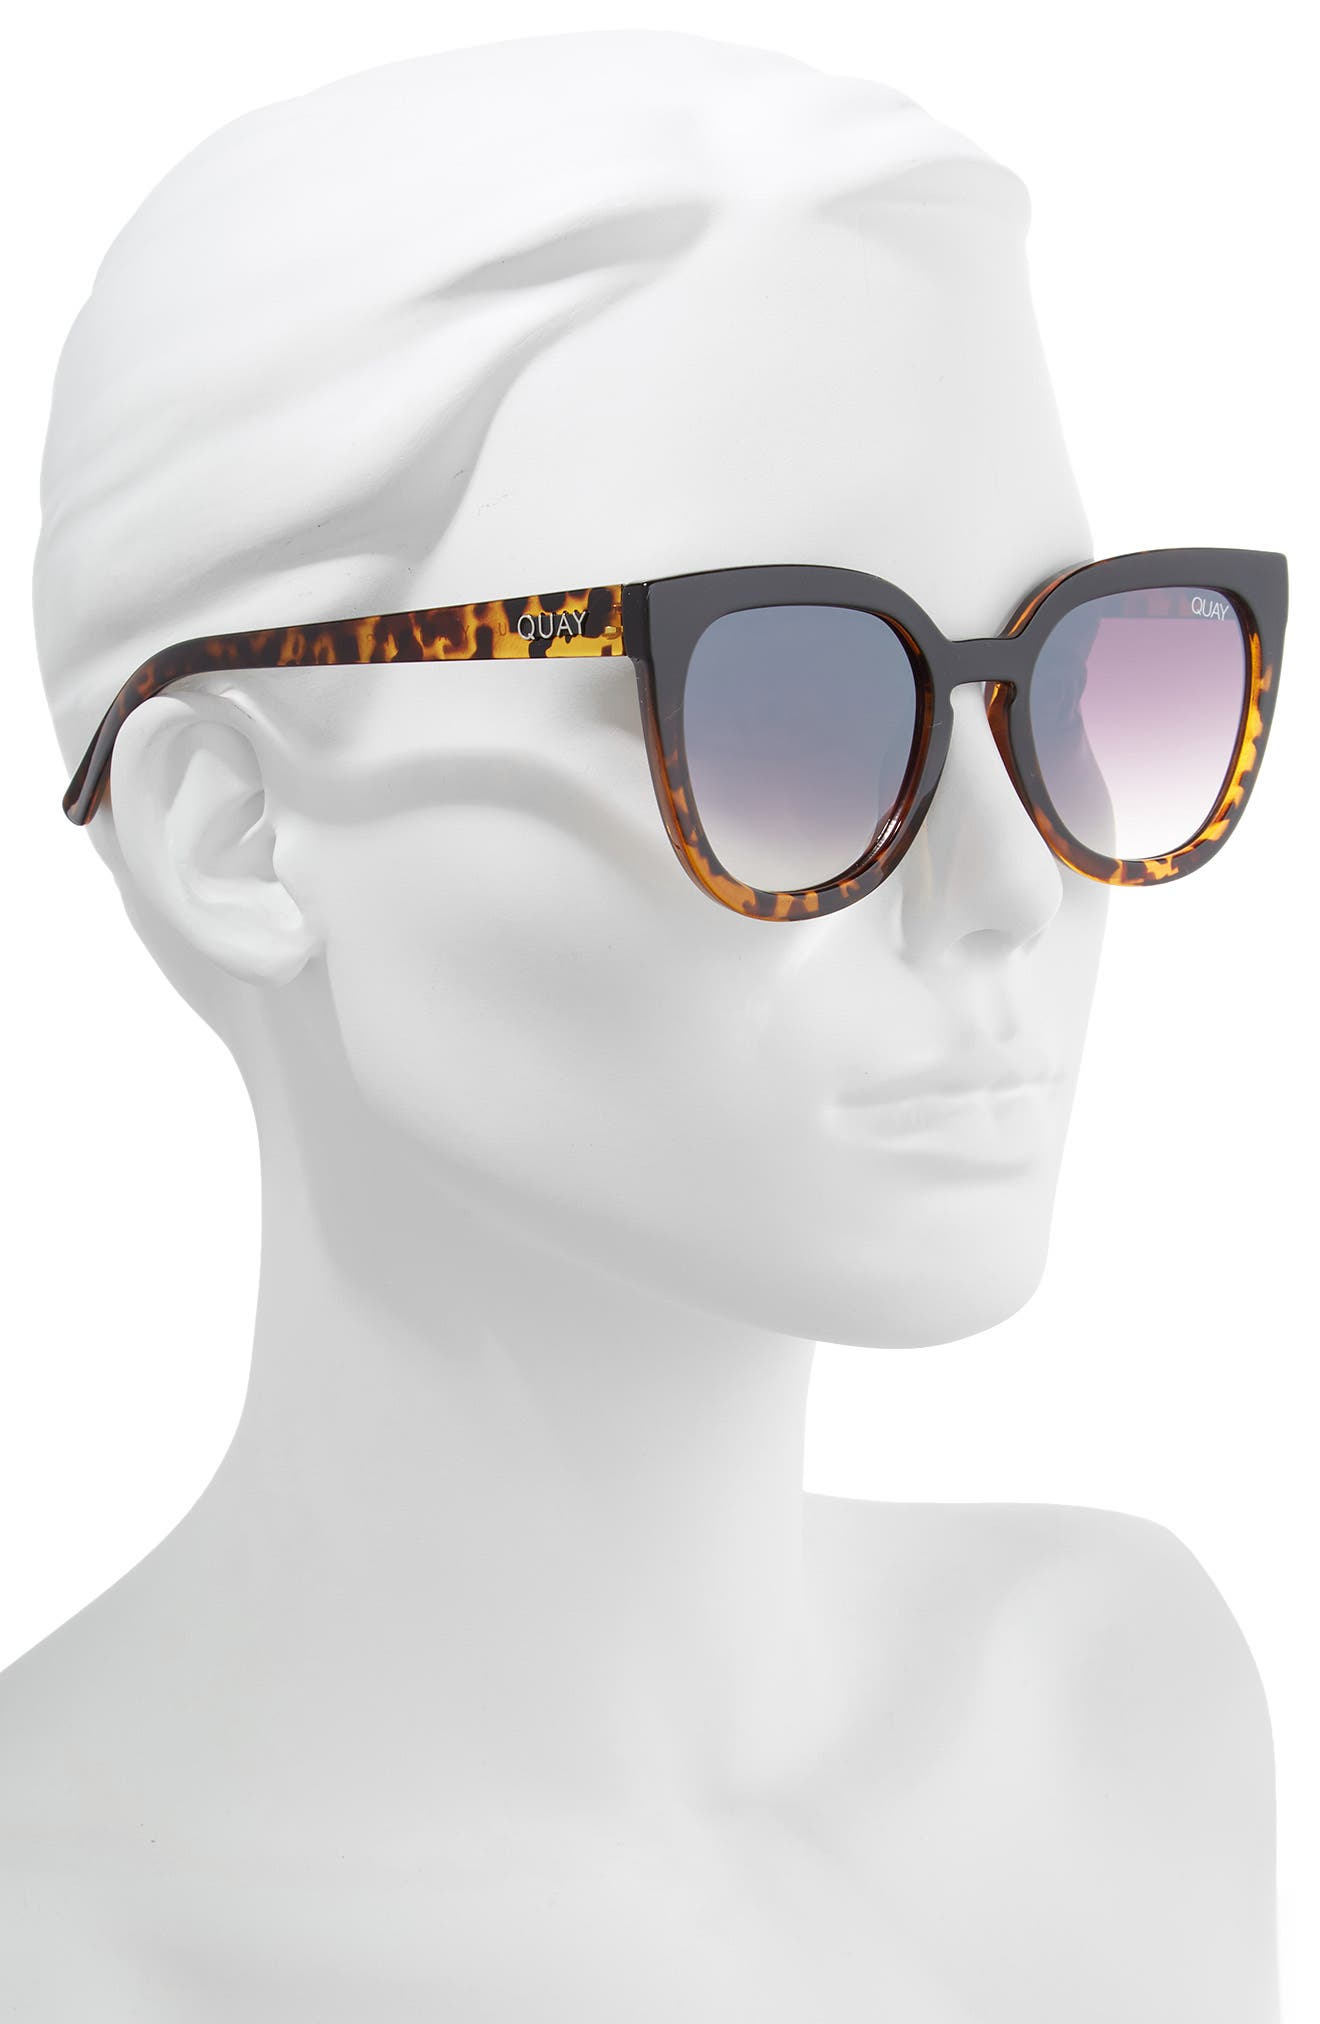 Noosa 50mm Square Sunglasses,                             Alternate thumbnail 2, color,                             BLACK TO TORT / BROWN FADE